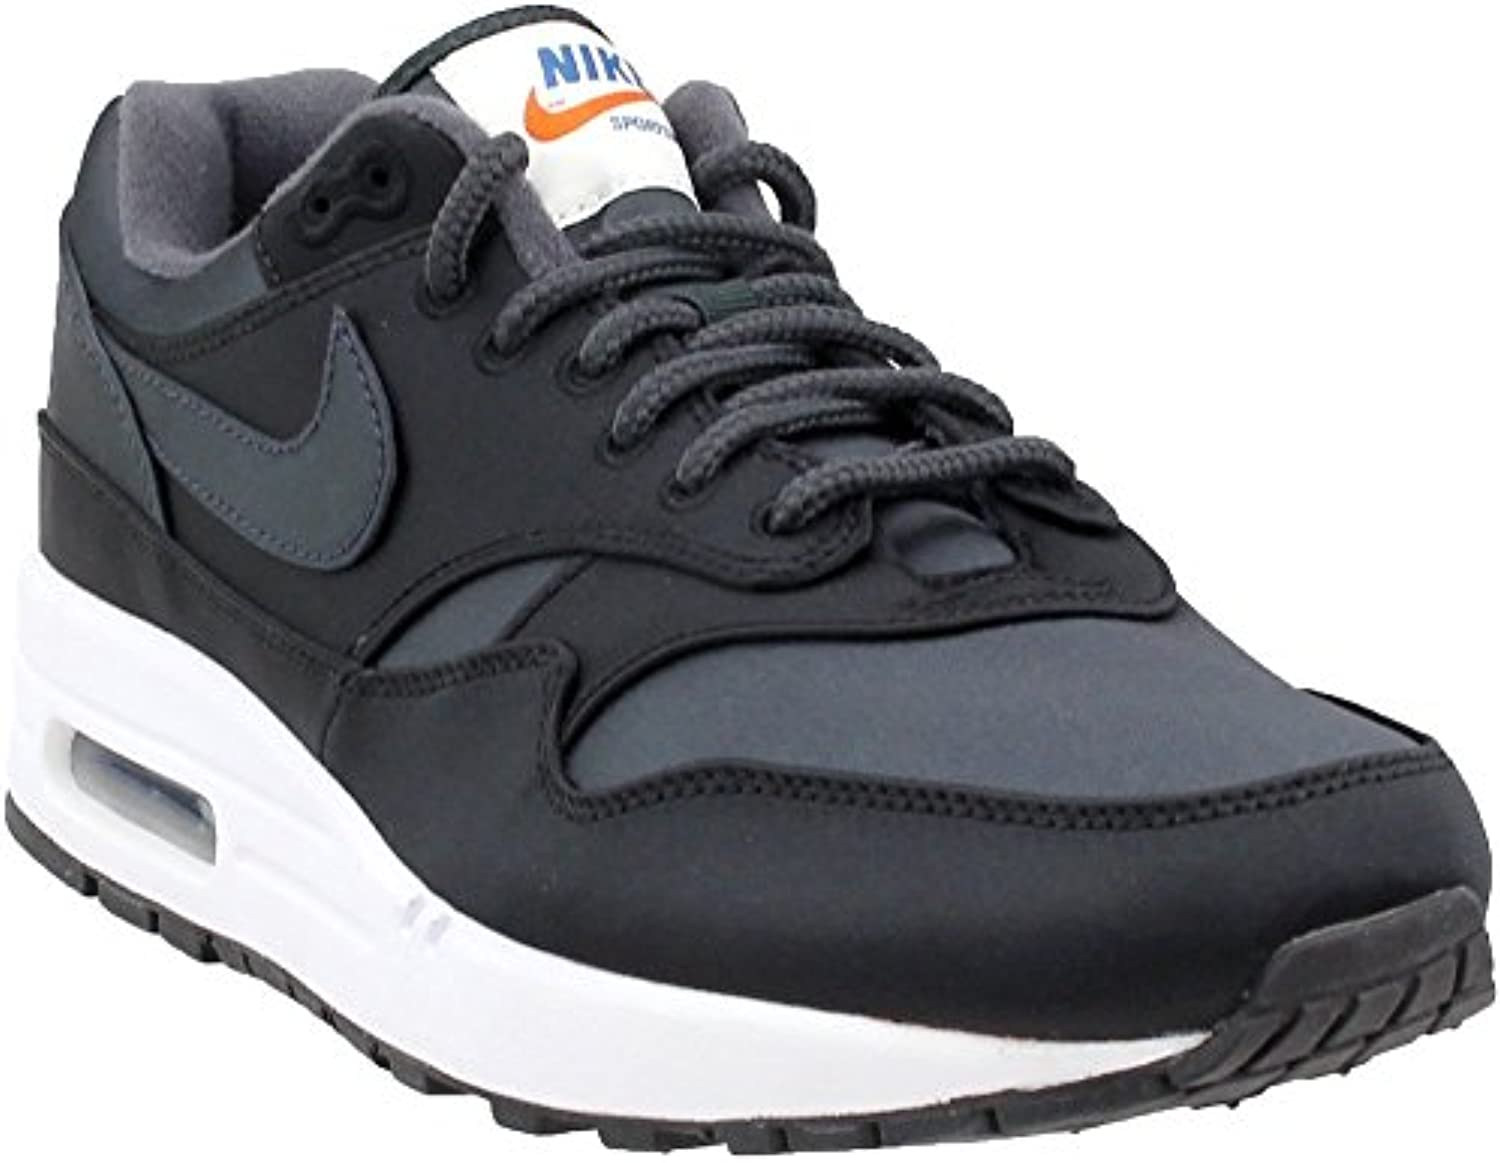 Zapatillas Nike – Air Max 1 Se Negro/Carbón/Blanco Talla: 40,5 -